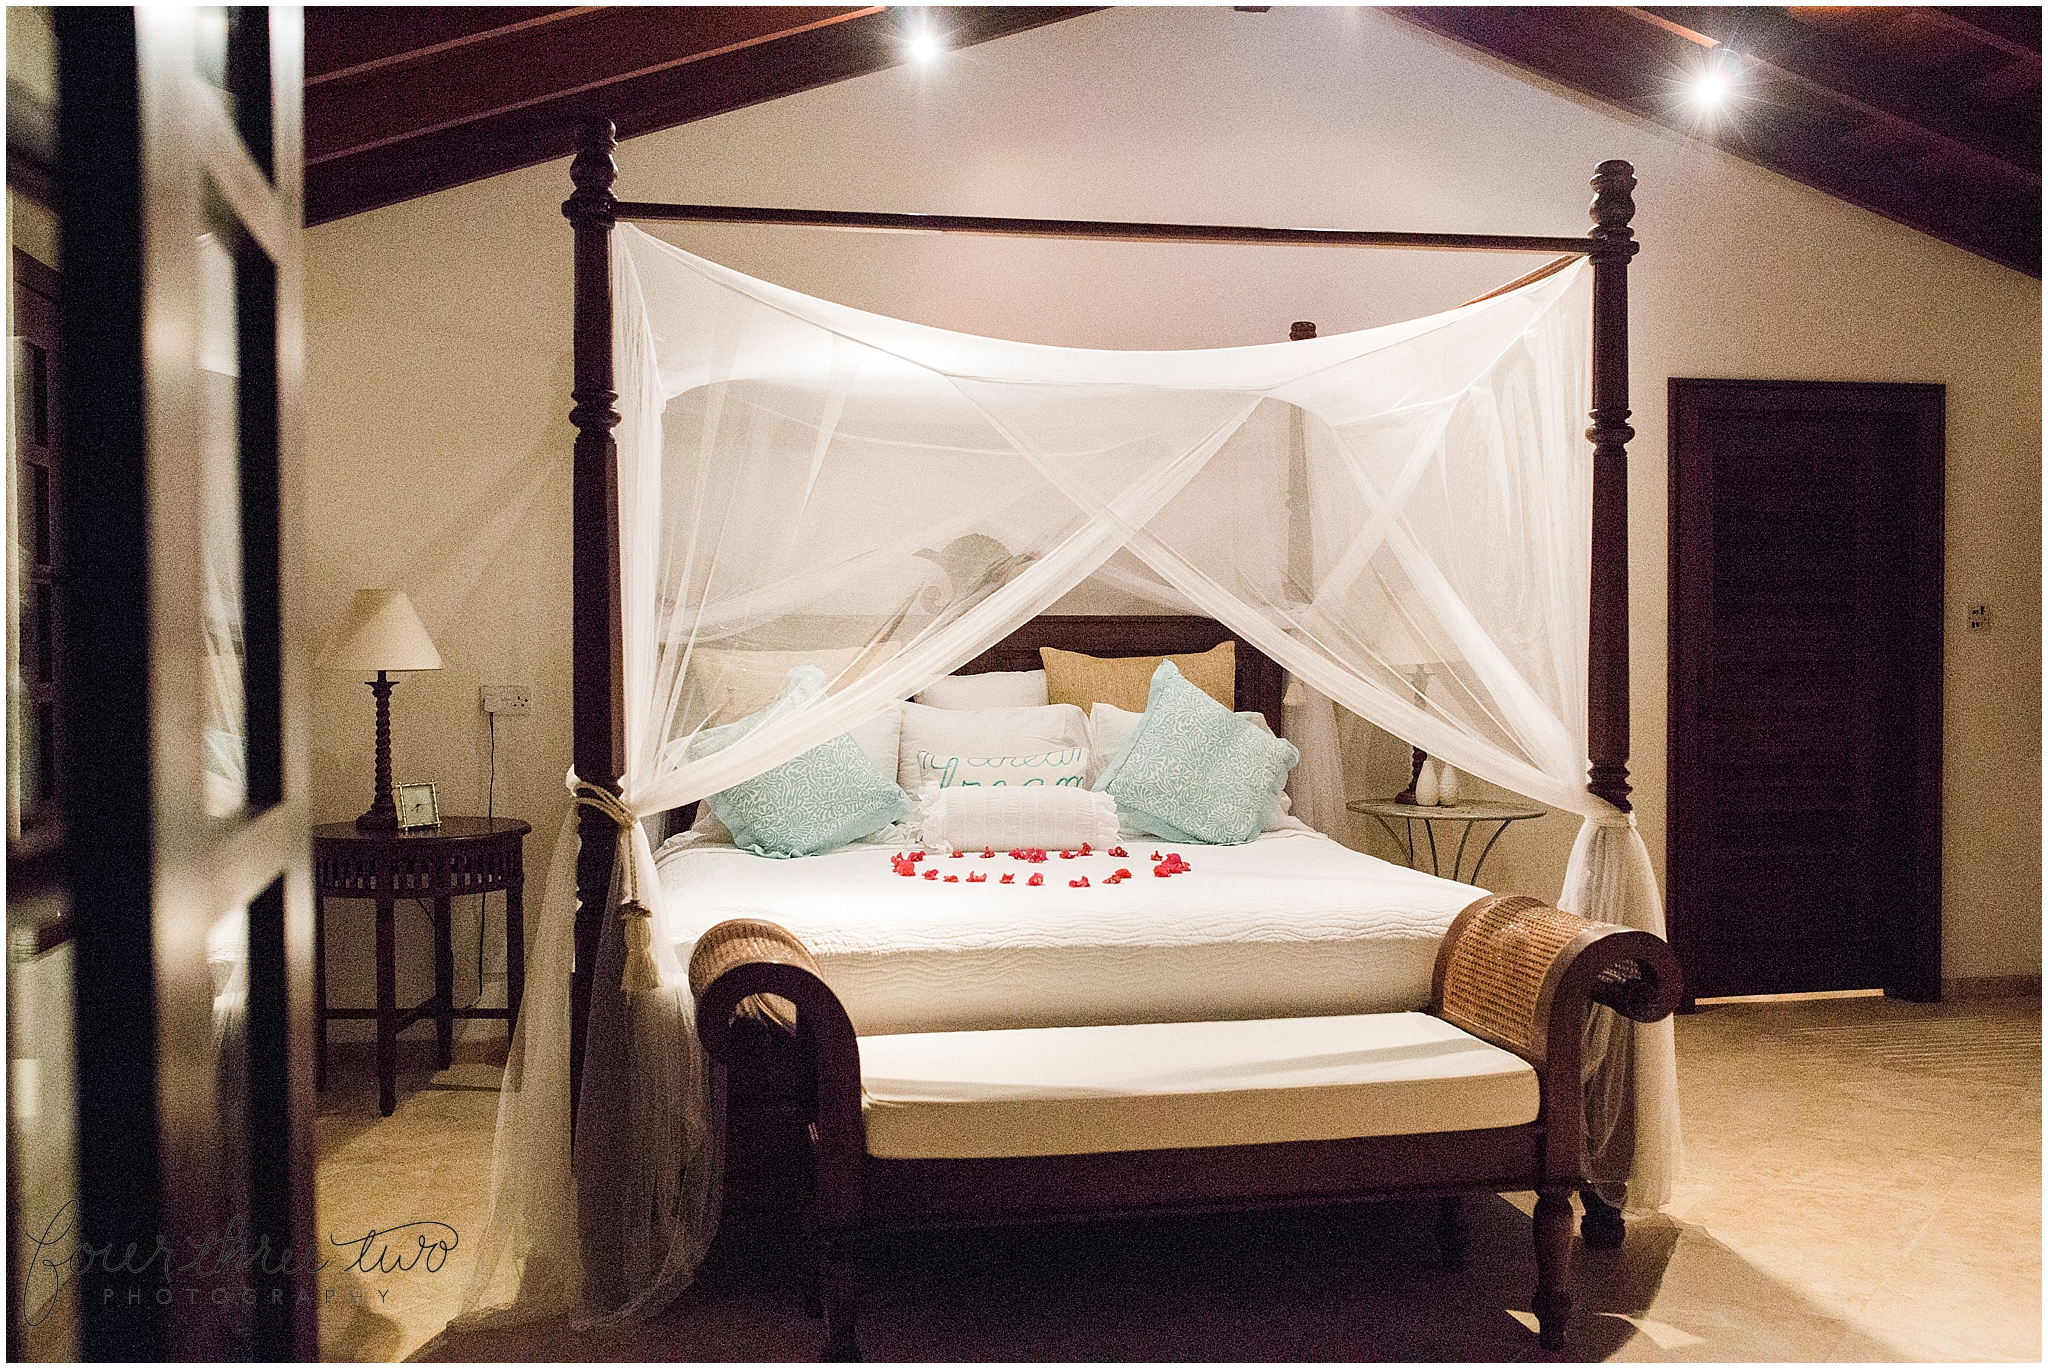 We jetted off to Bequia for our honeymoon. It's a teeny tiny island near Barbados. After numerous flights, this king sized bed + flowers (in the shape of a heart!) was exactly what I needed.